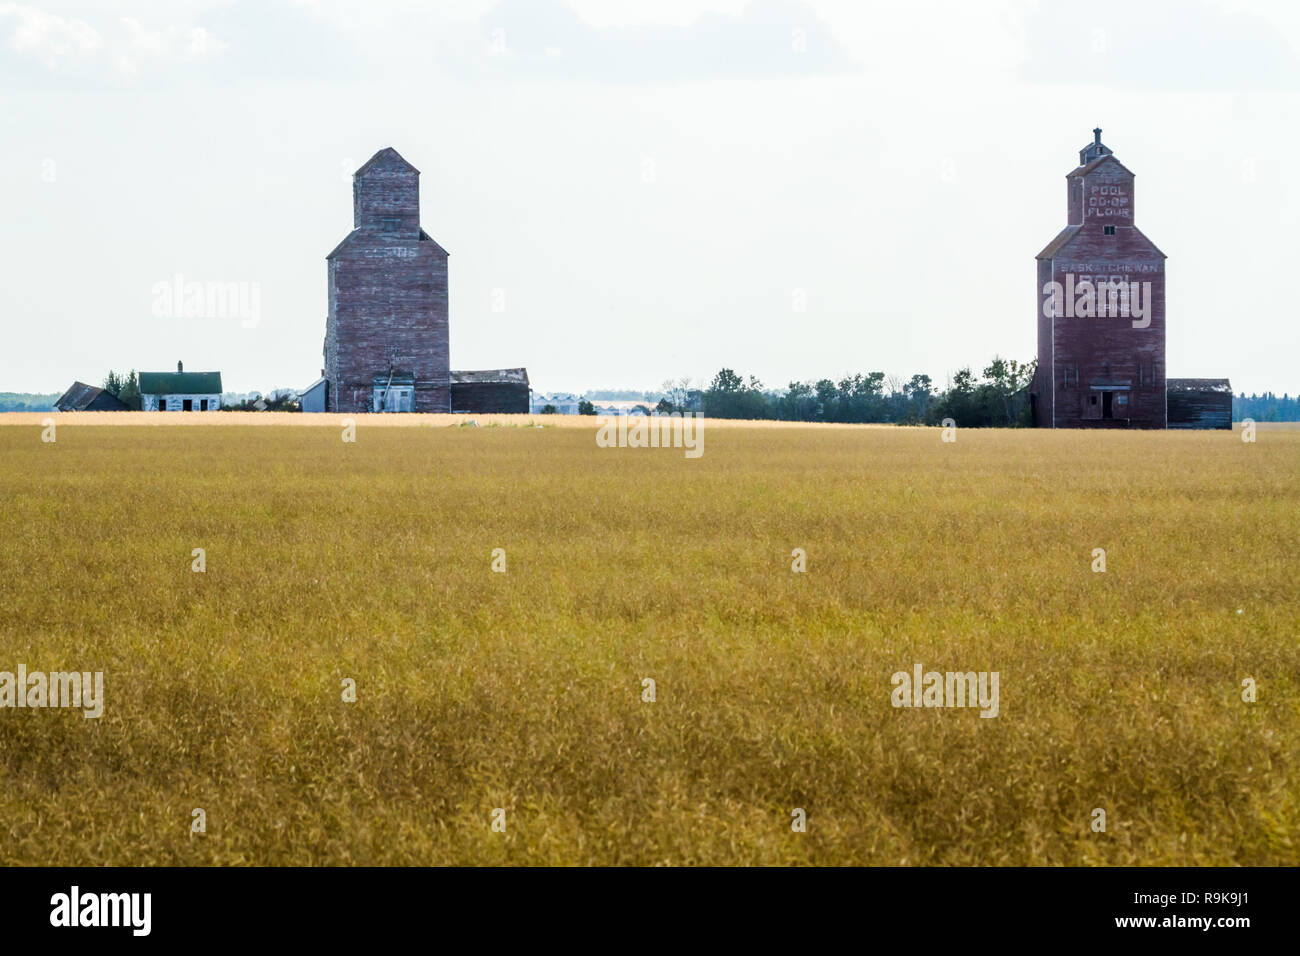 Old grain elevators in the hamlet of Lepine, Saskatchewan, Canada, 100 km north of Saskatoon. Agriculture drives the economy in the Wheat Province - Stock Image